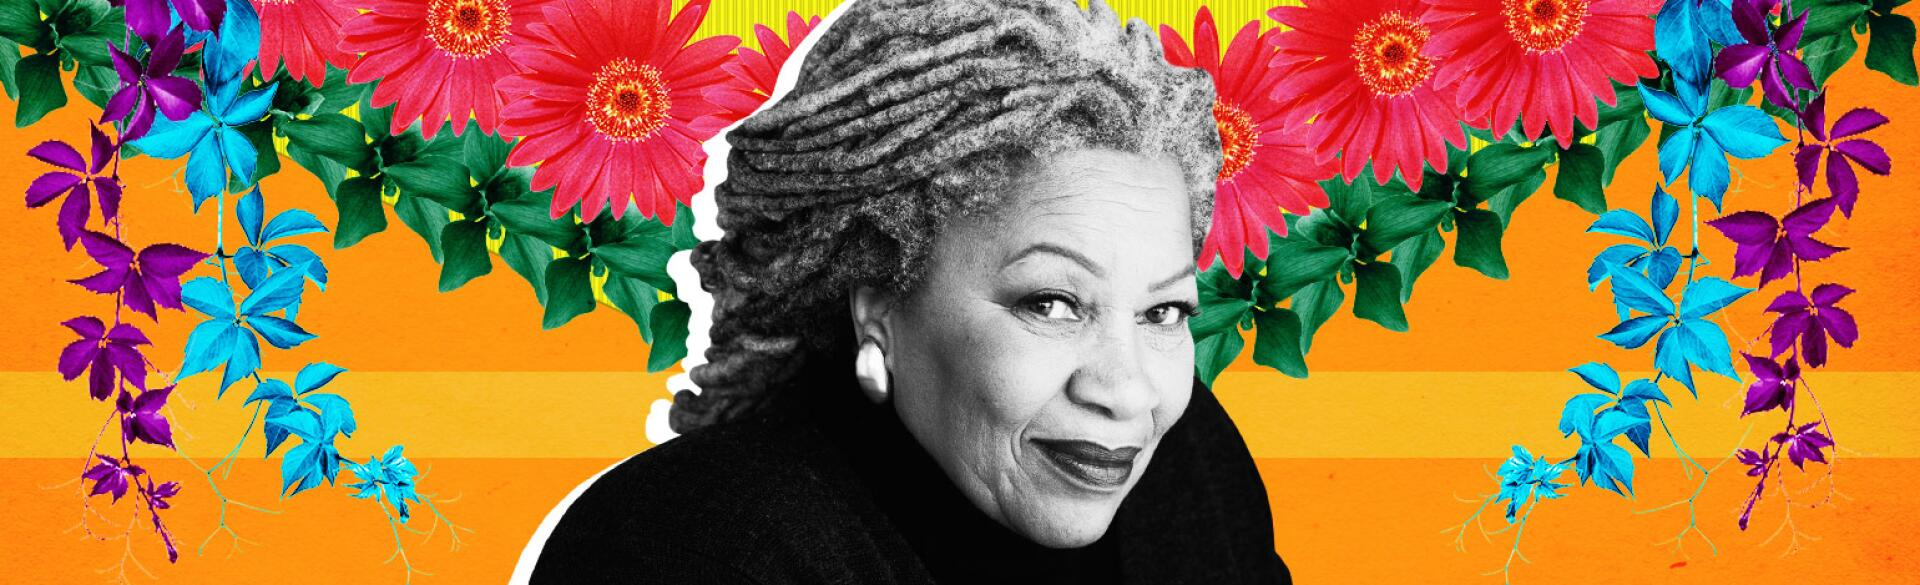 An image of author Toni Morrison, who just released her newest collection, The Source of Self-Regard.